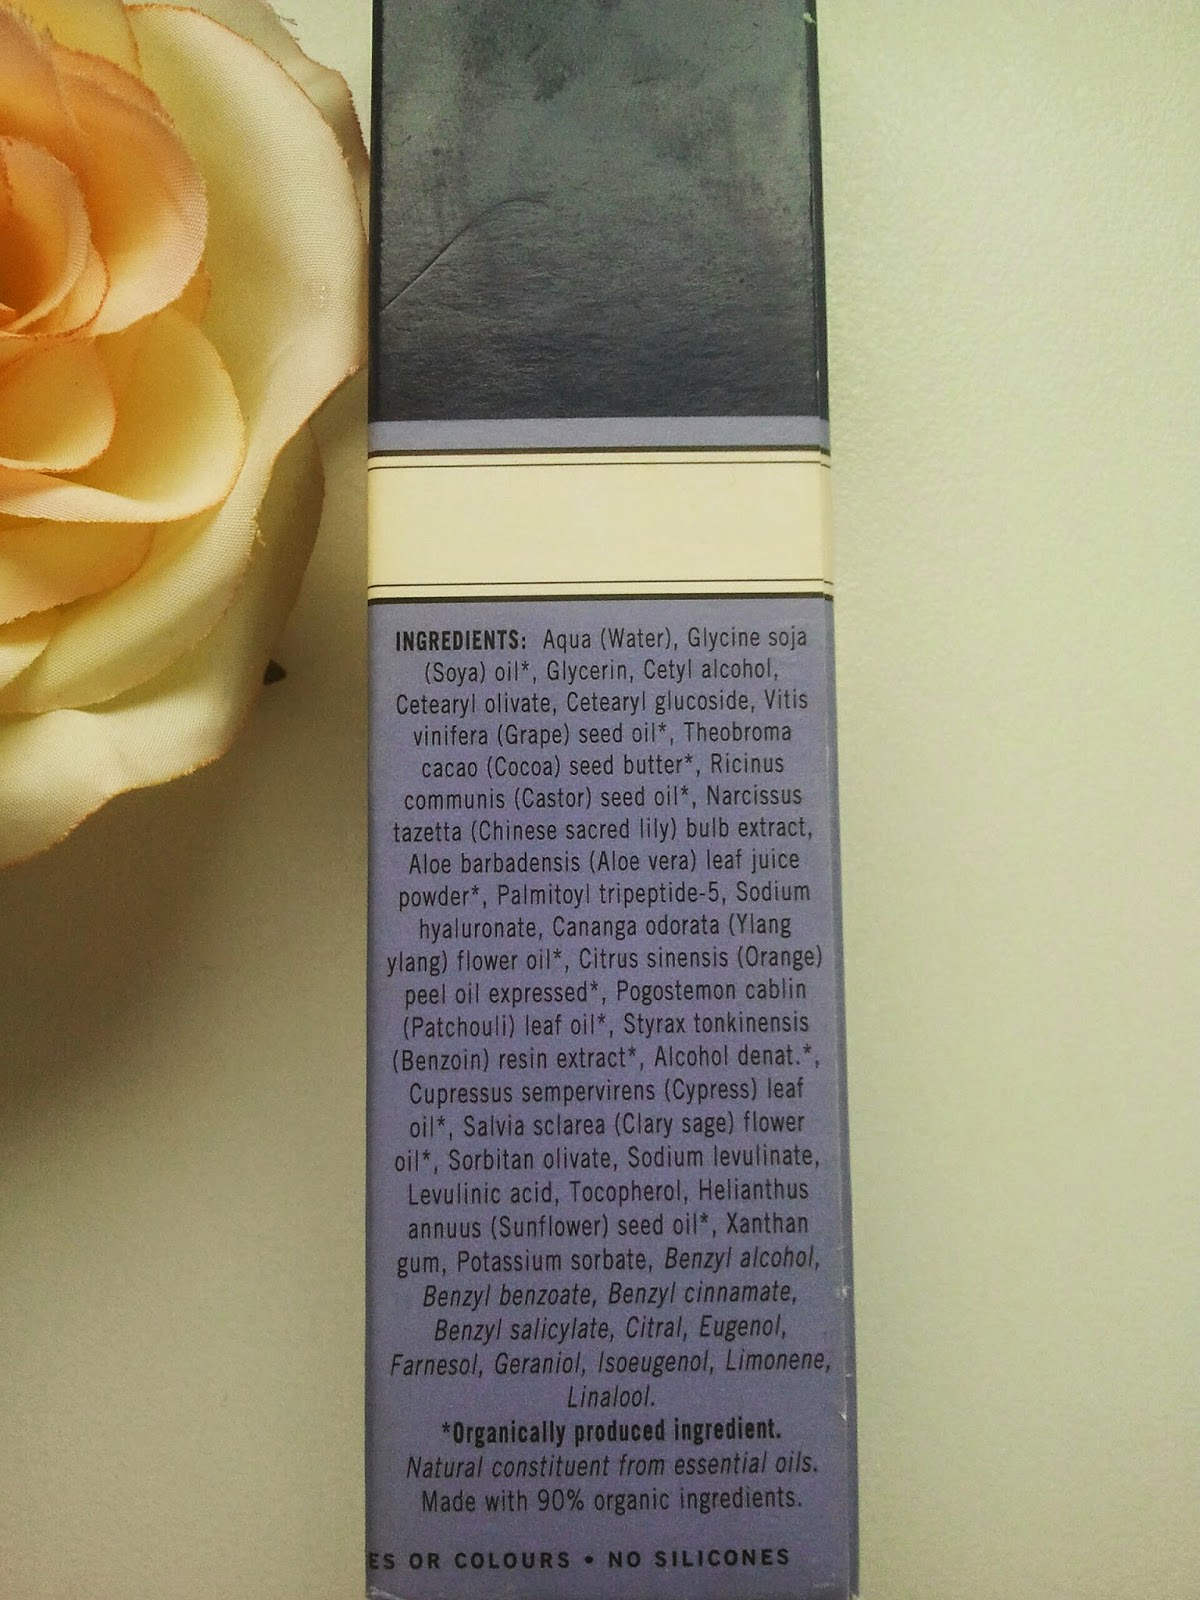 Neal's-Yard-Remedies-Beauty-Sleep-Concentrate-on-my-table-with-a-rose-ingredients